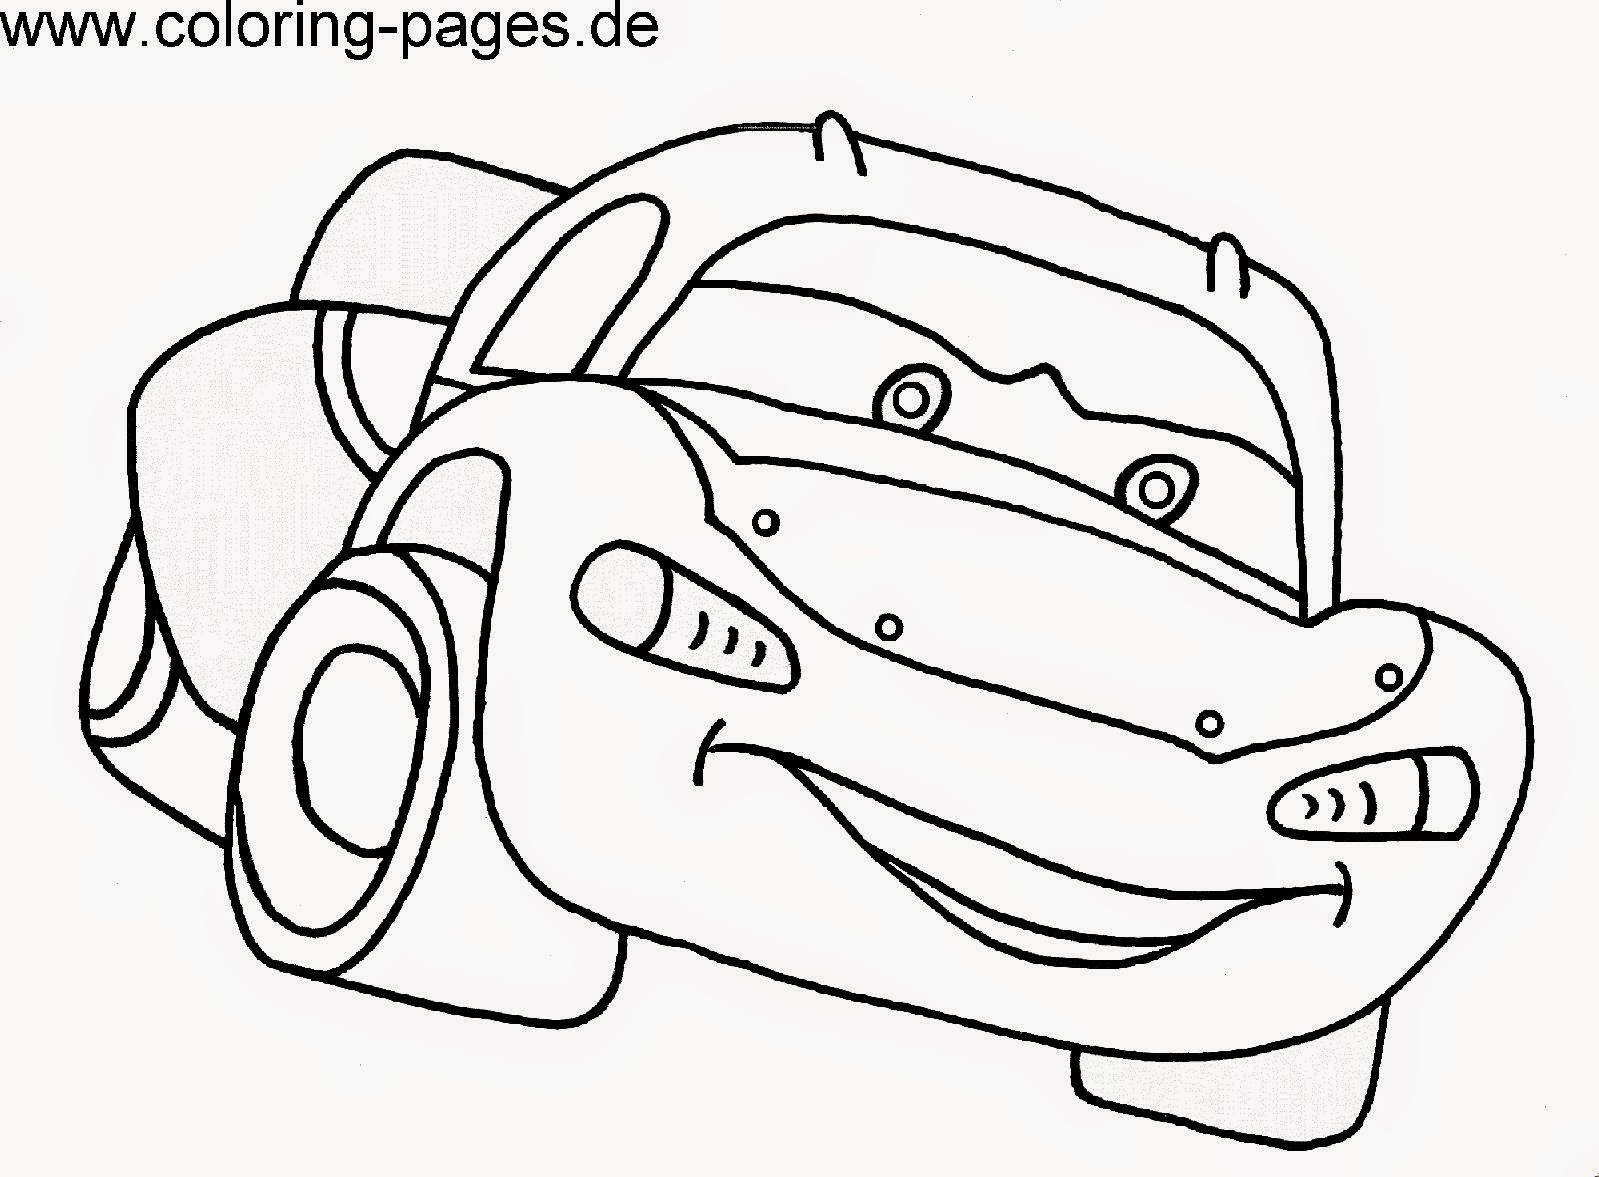 coloring pages to color kinder - photo#30